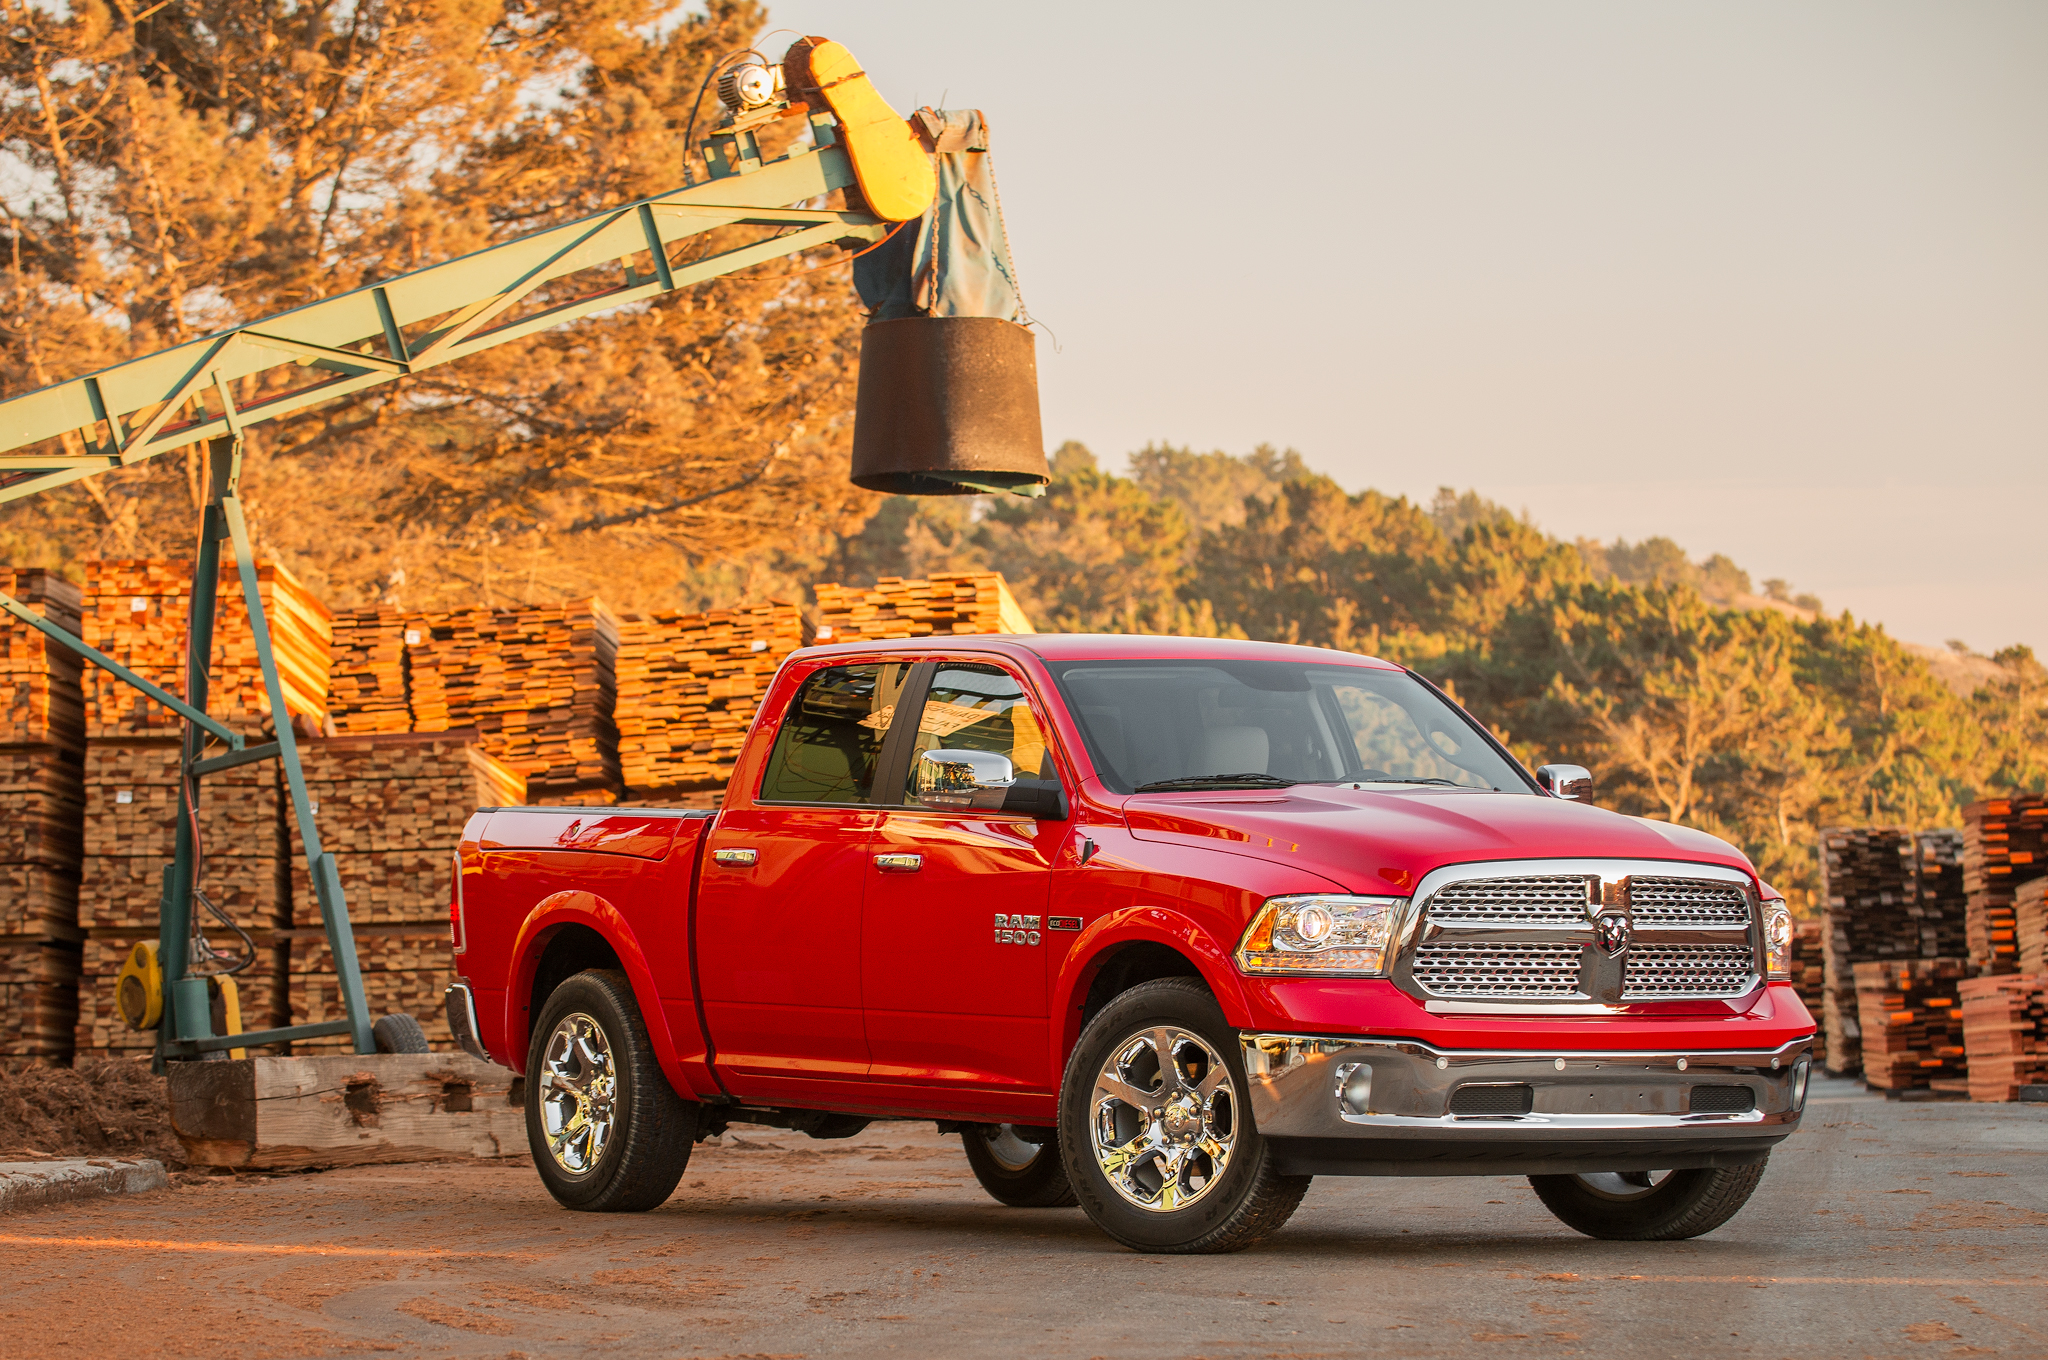 2014 Ram 1500 EcoDiesel EPA-Rated at 20/28 MPG